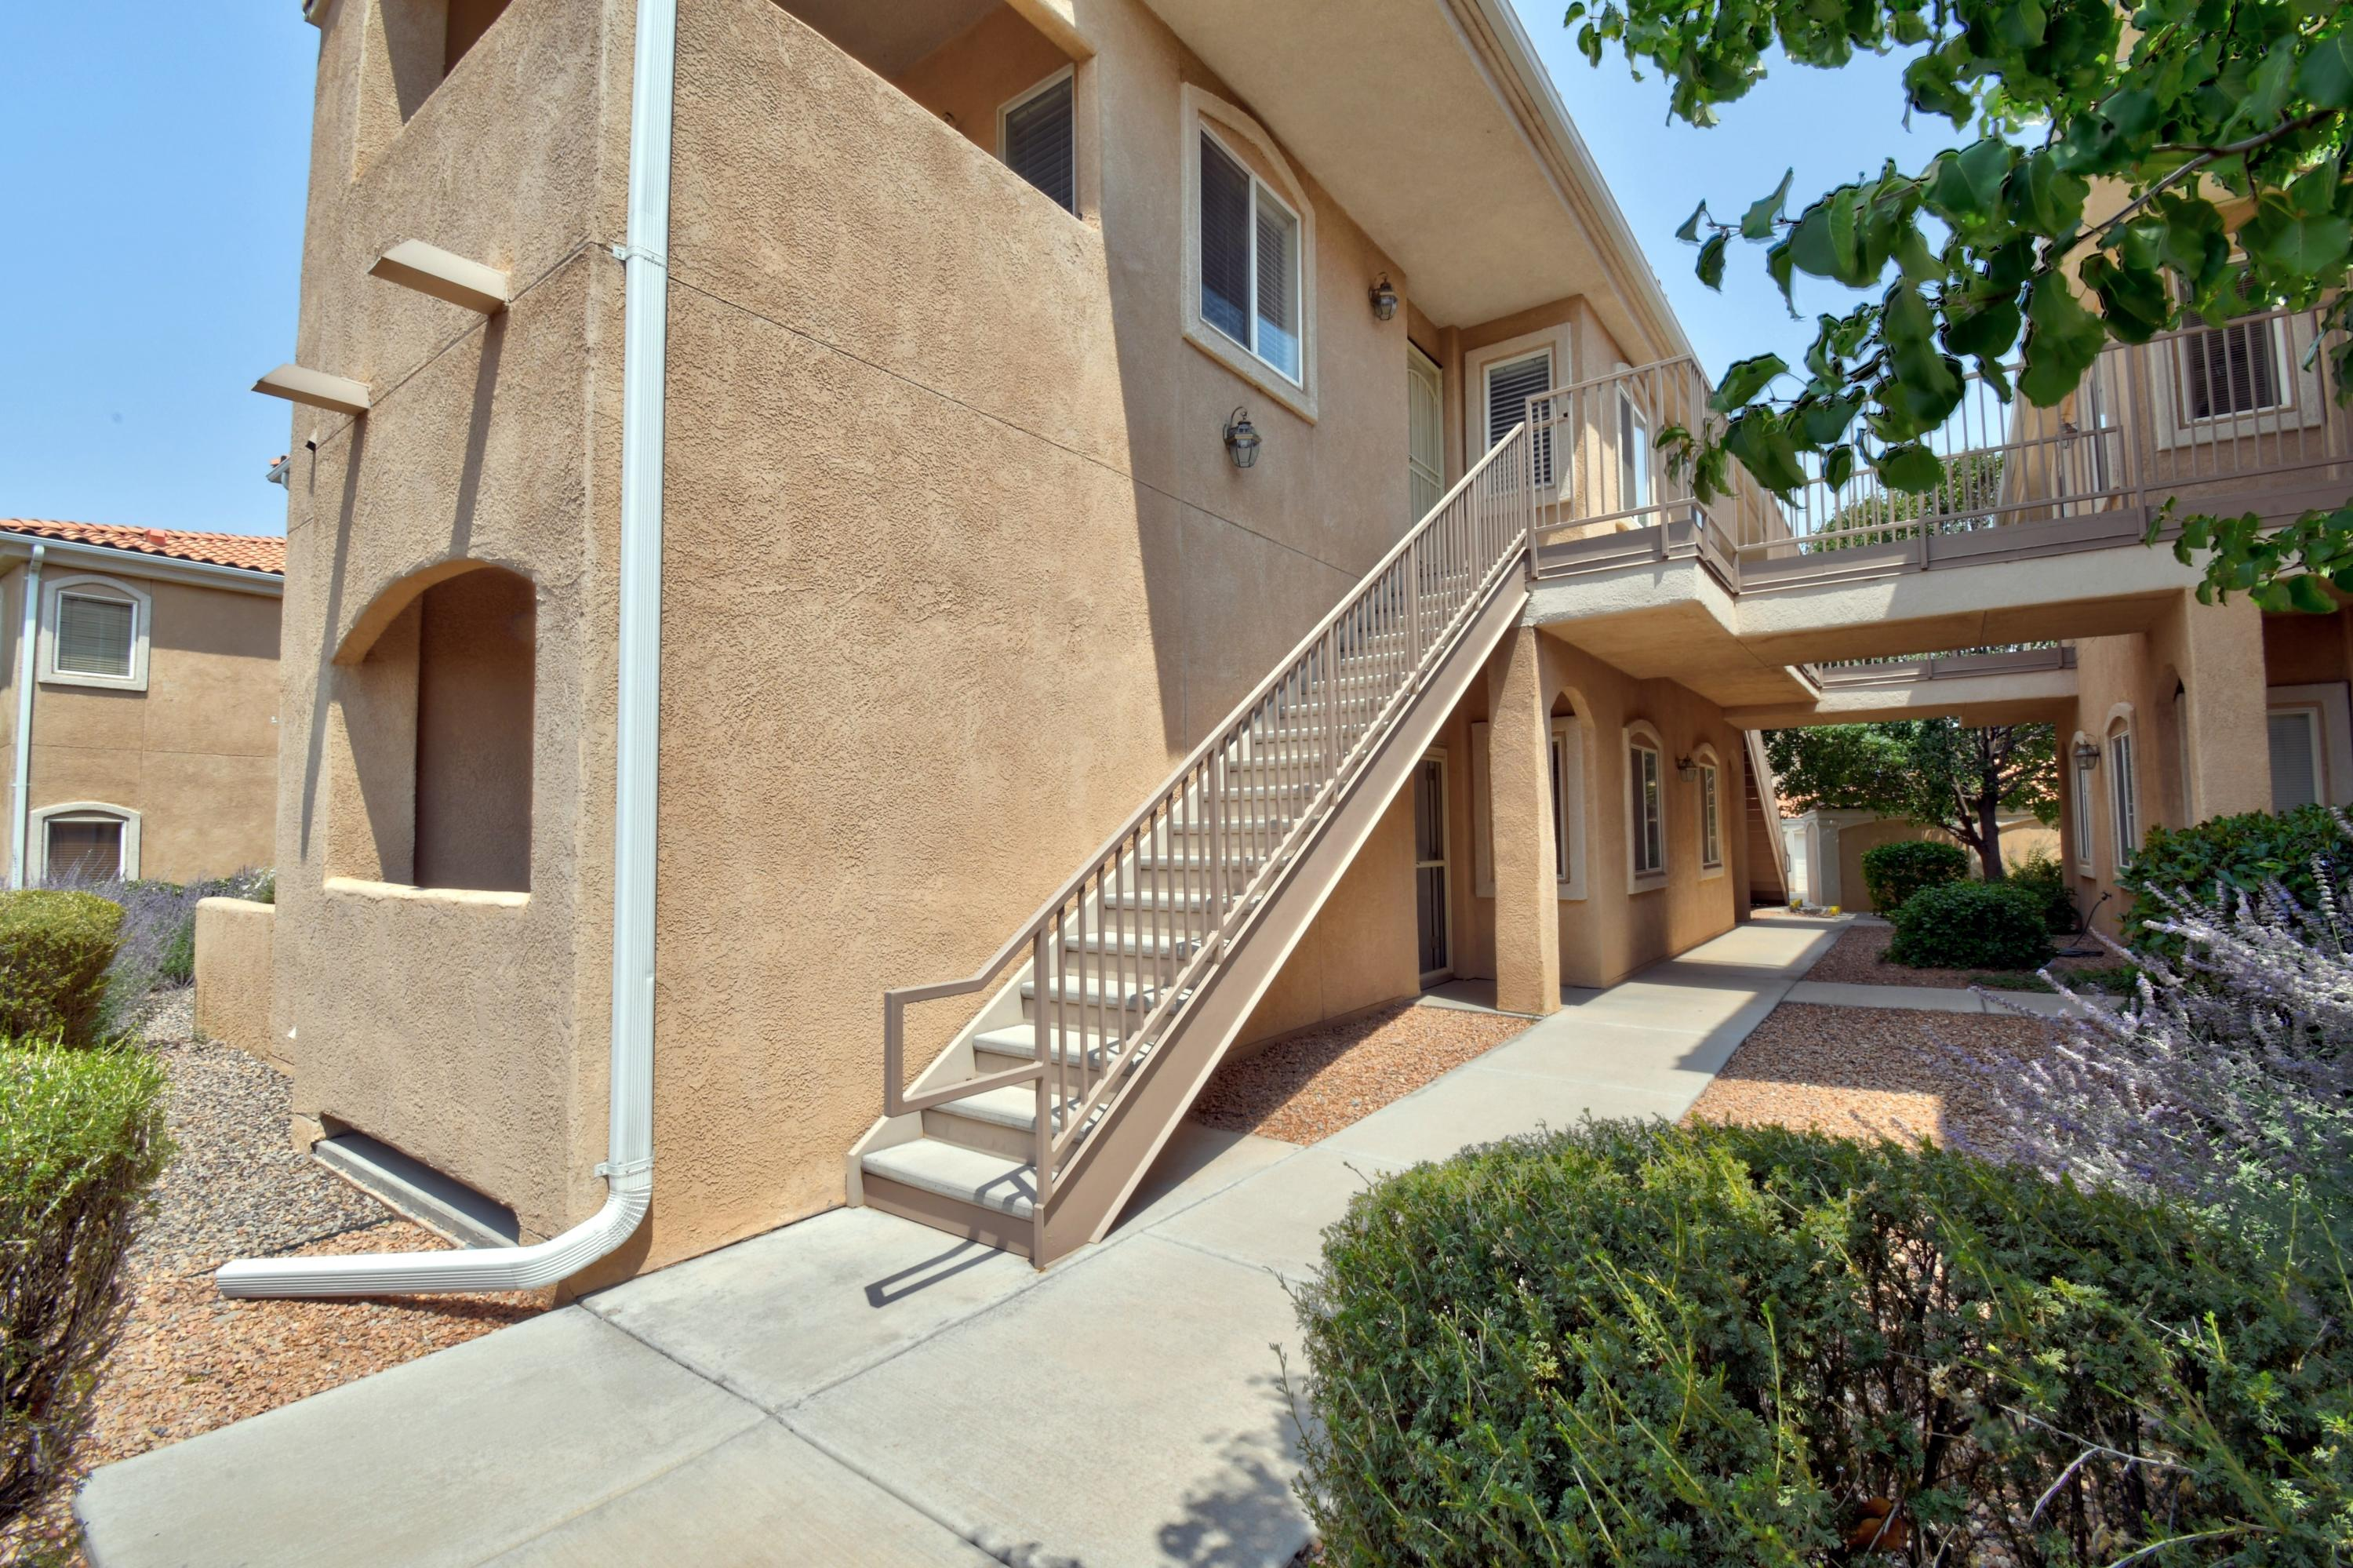 This is it! Very well kept and super clean 3 bedroom condo in desired Vista Del Norte subdivision, close to shopping, I-25, dining and entertainment. This particular cozy unit is located on the bottom level, towards the back of the building which backs up to the park.  Inside this gem you will find a spacious kitchen which opens to both the living area and dining area. Perfect for including all guests! Solid laminate and tile flooring throughout makes home easy to clean. Be sure to check out the wide open park and private clubhouse. Make sure to make your appointment today!